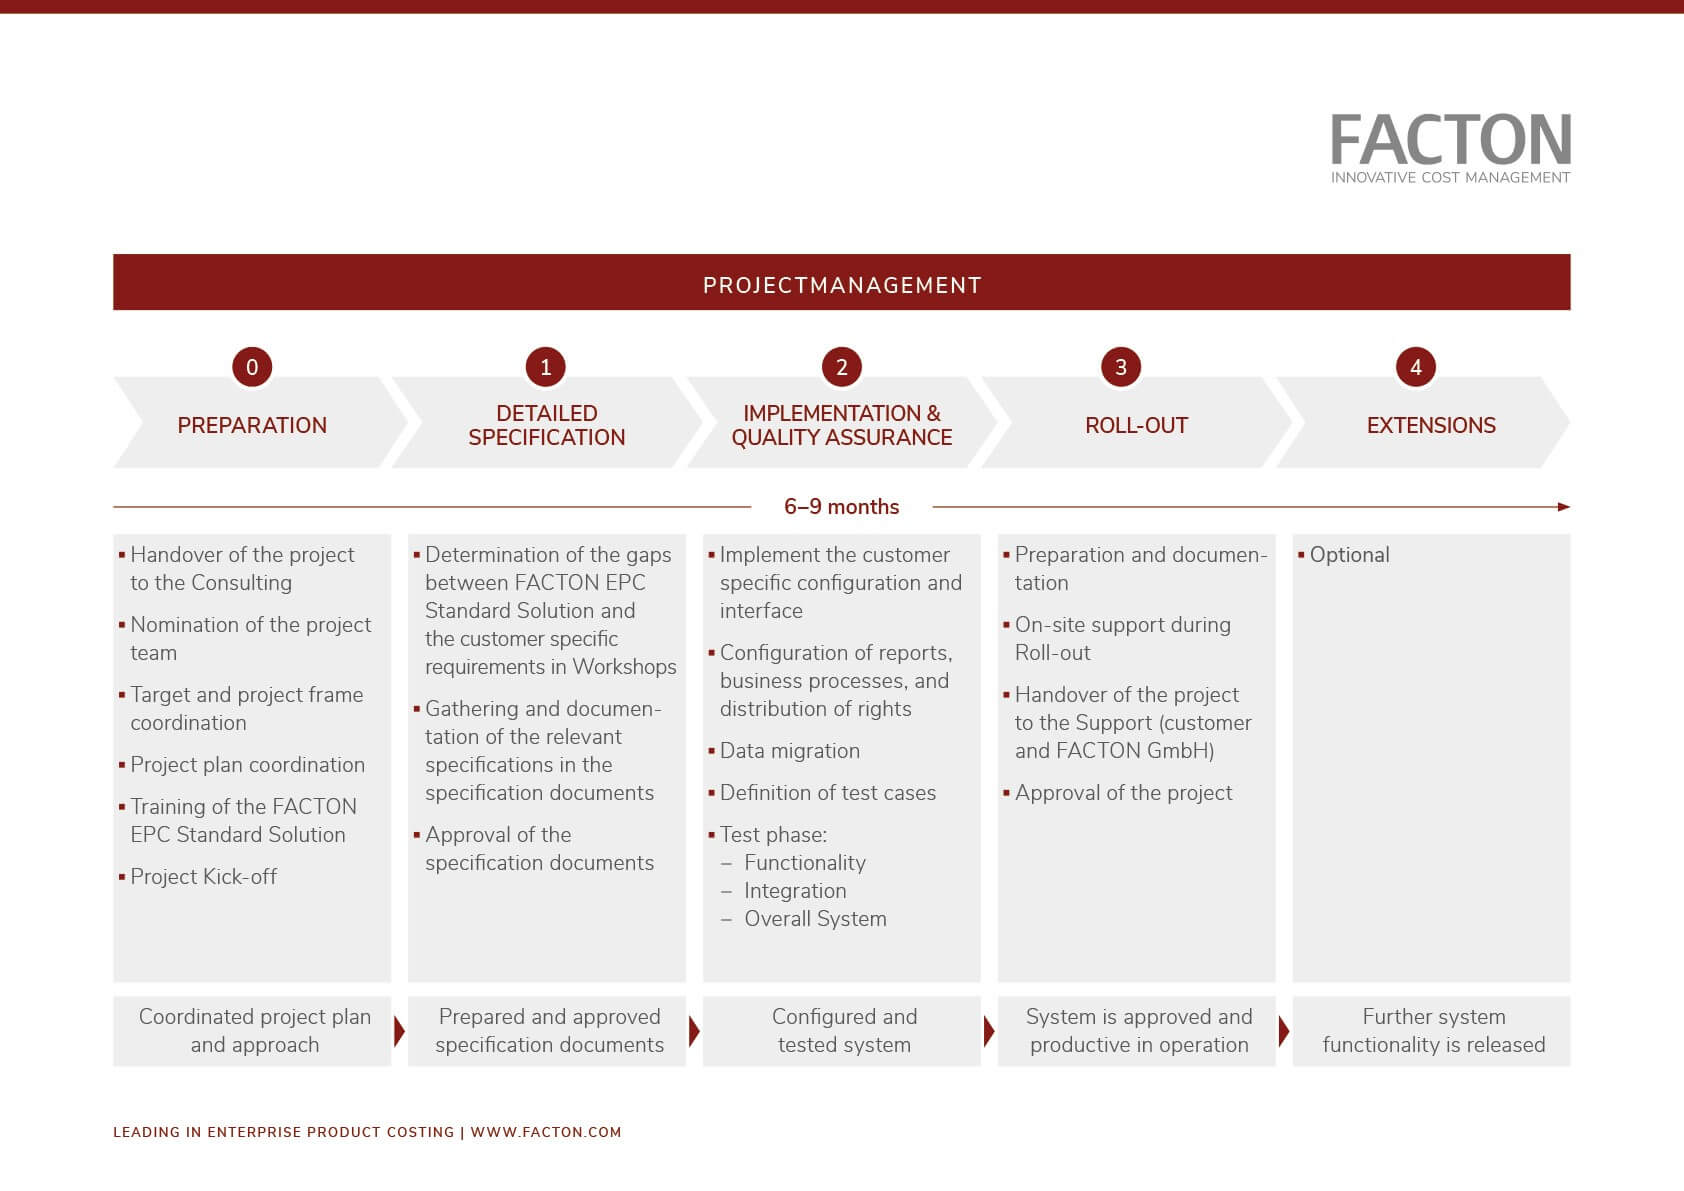 Chart showing the project implementation process at FACTON